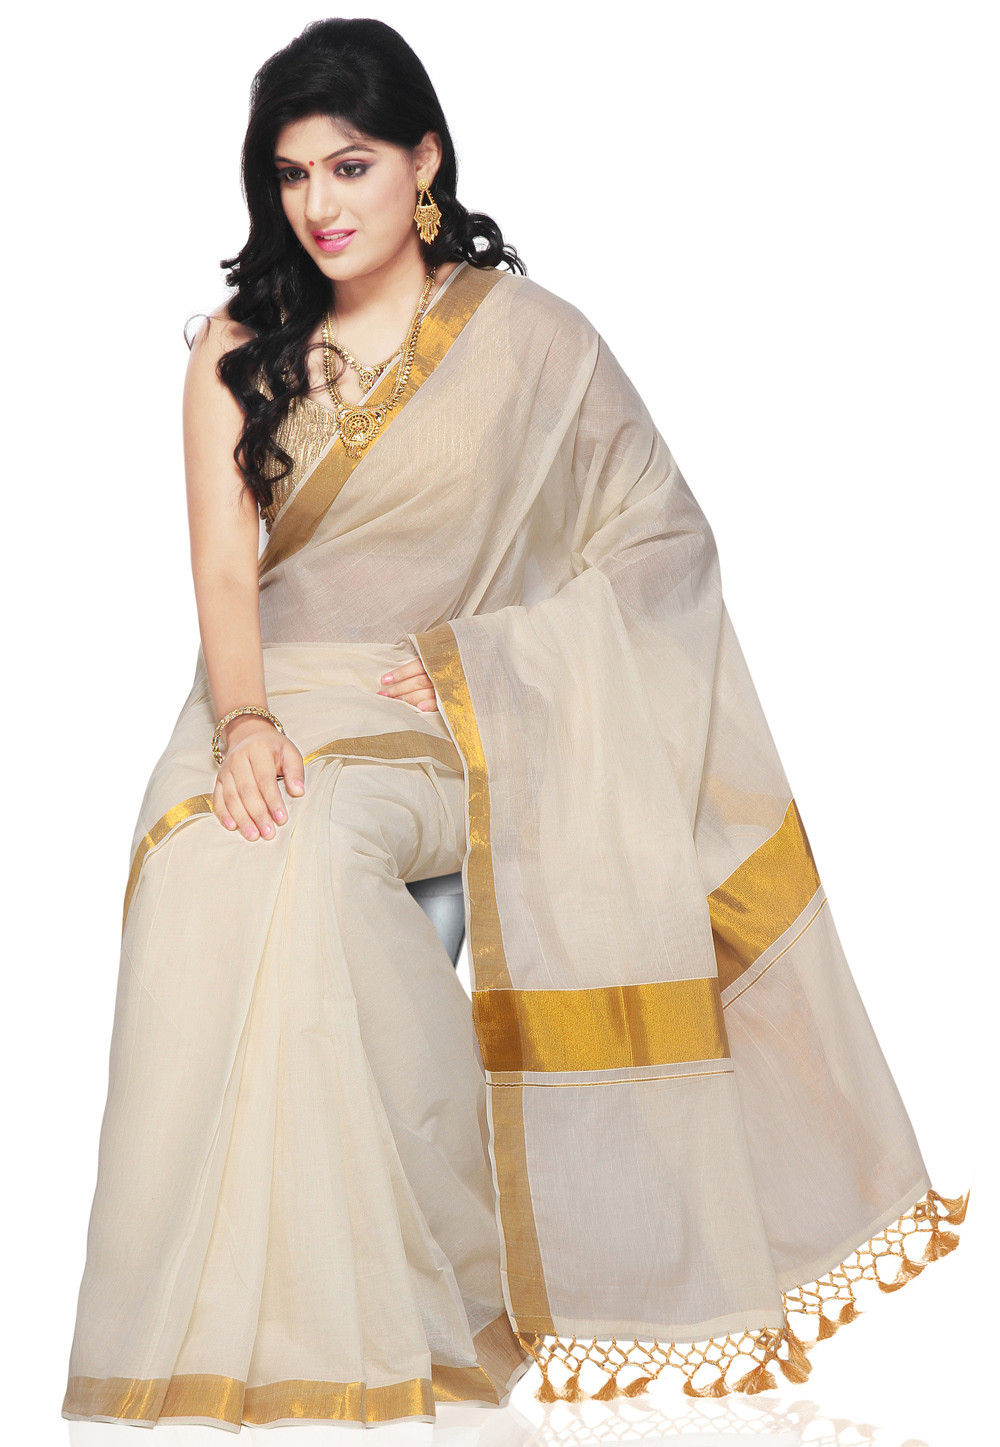 becff5bb4e Blouse Design For Kerala Saree